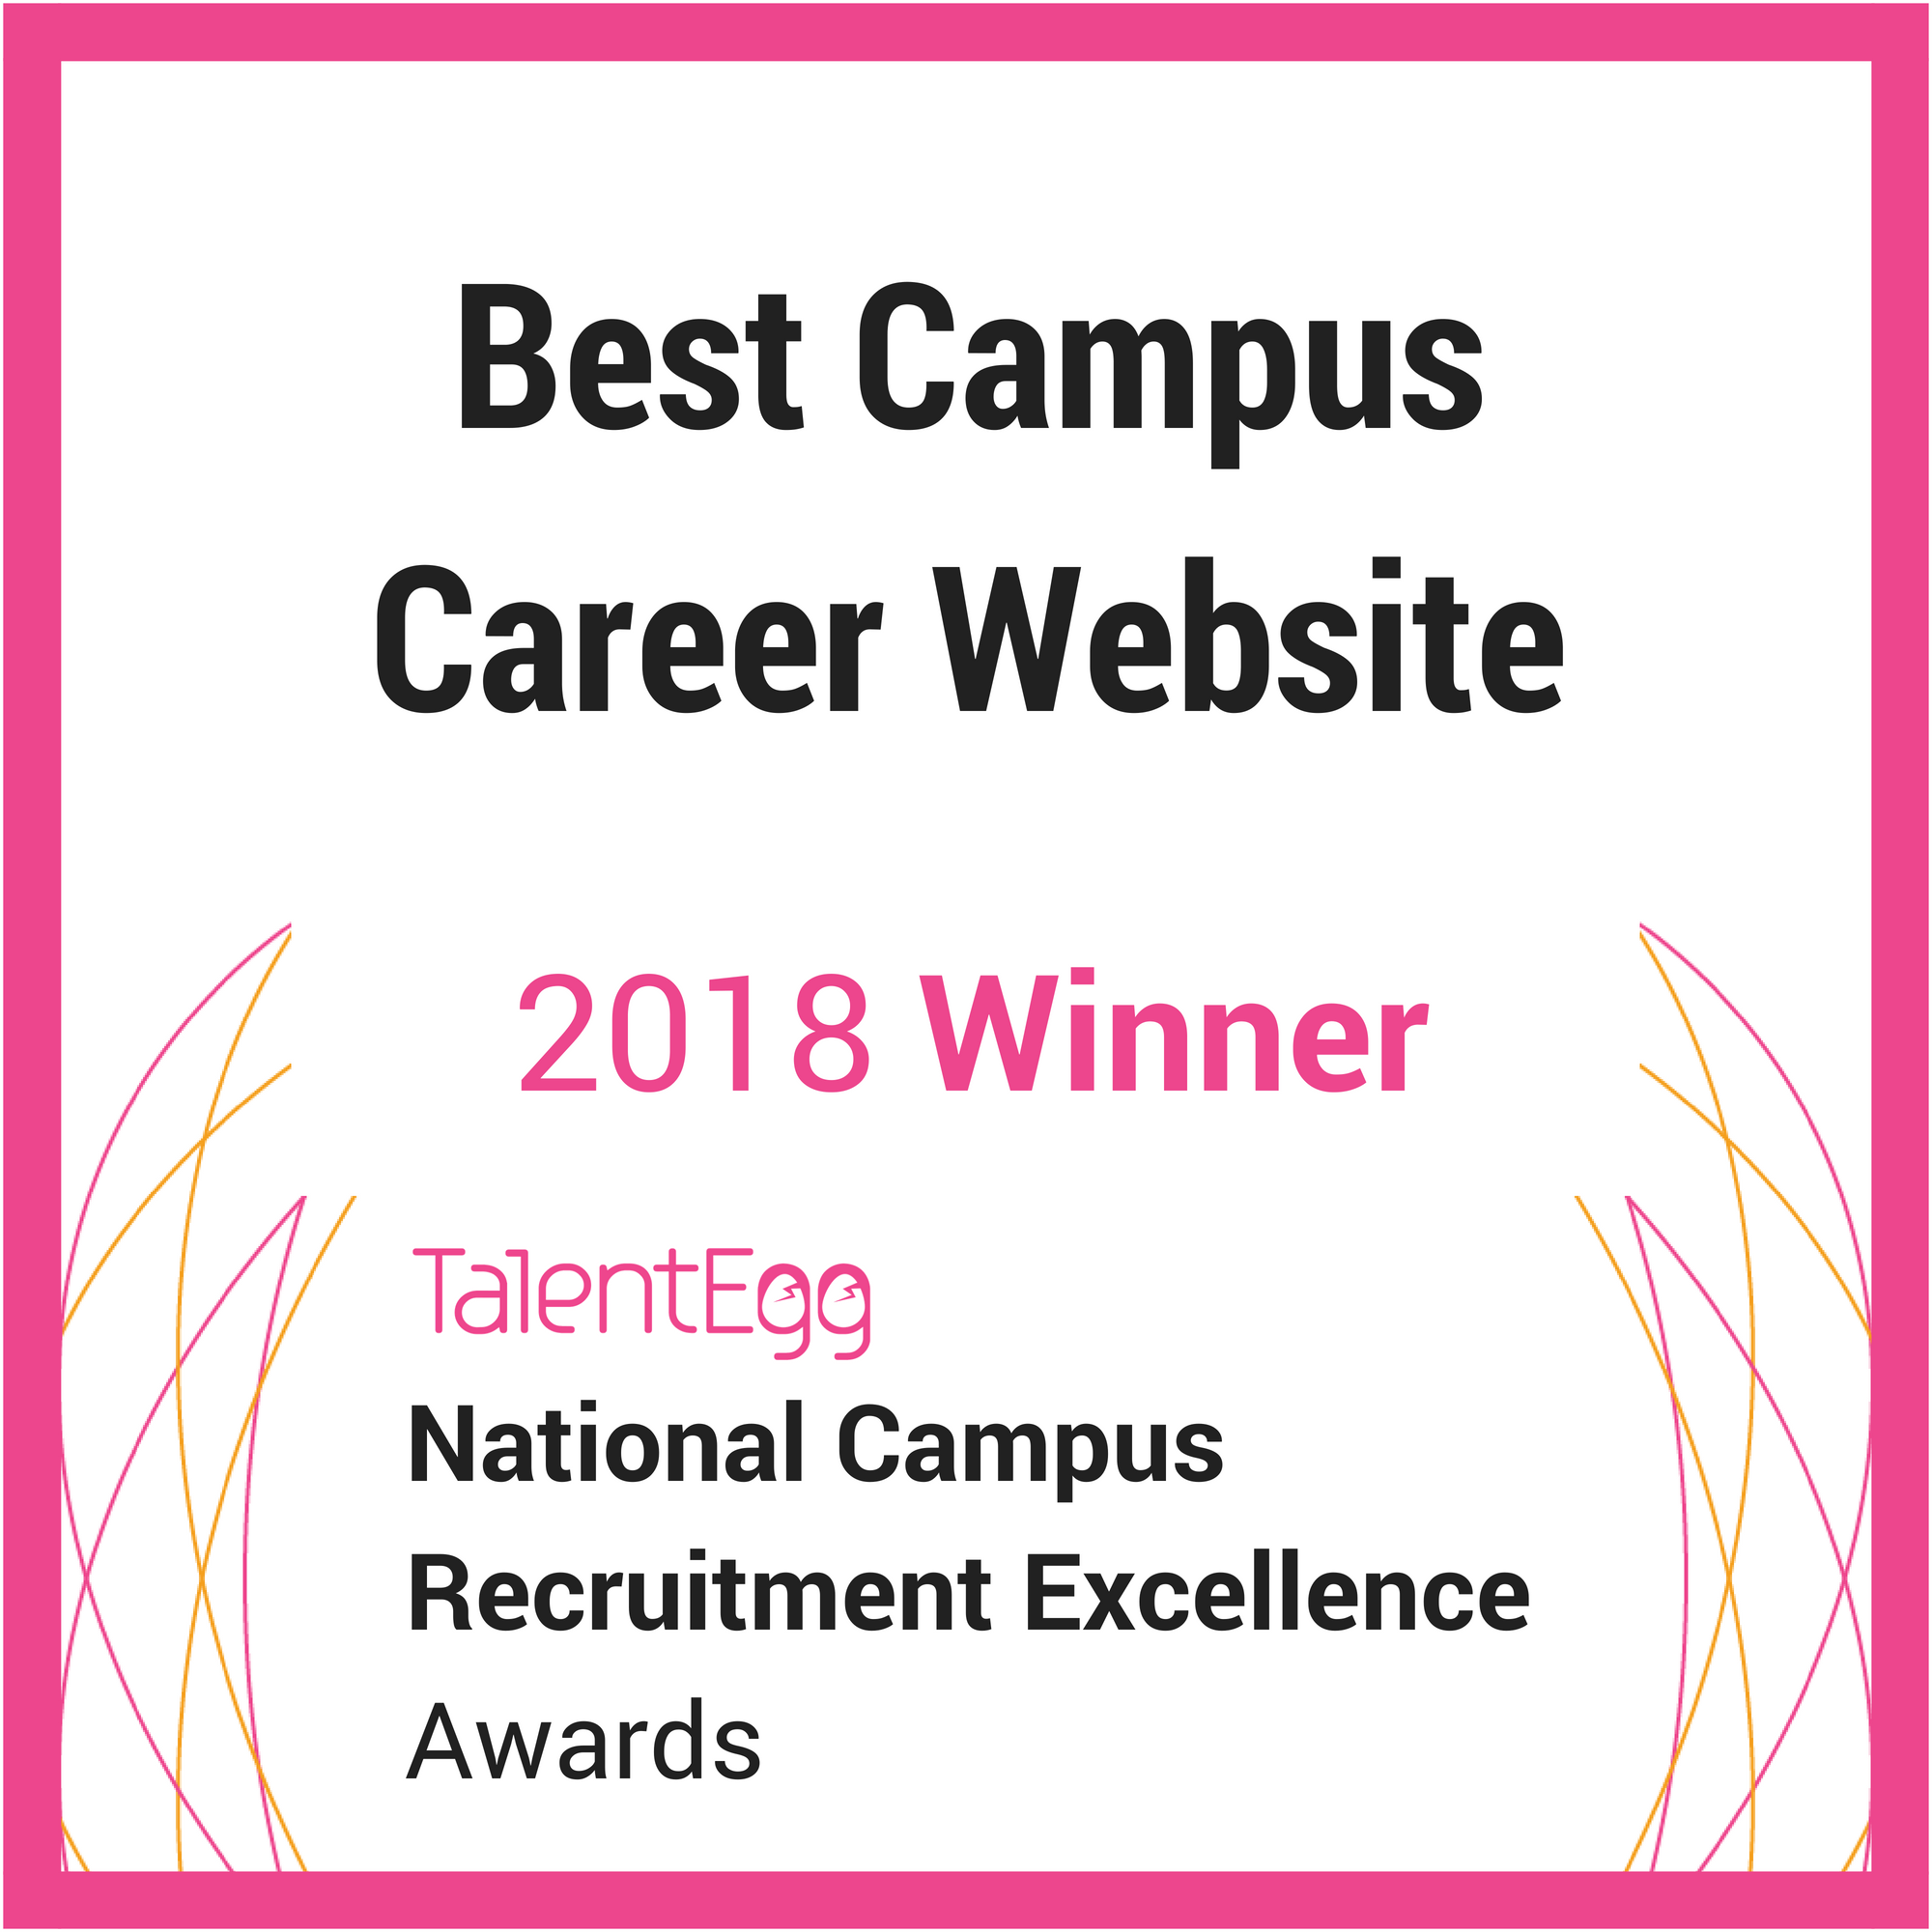 2018 TalentEgg Best Campus Career Website Winner